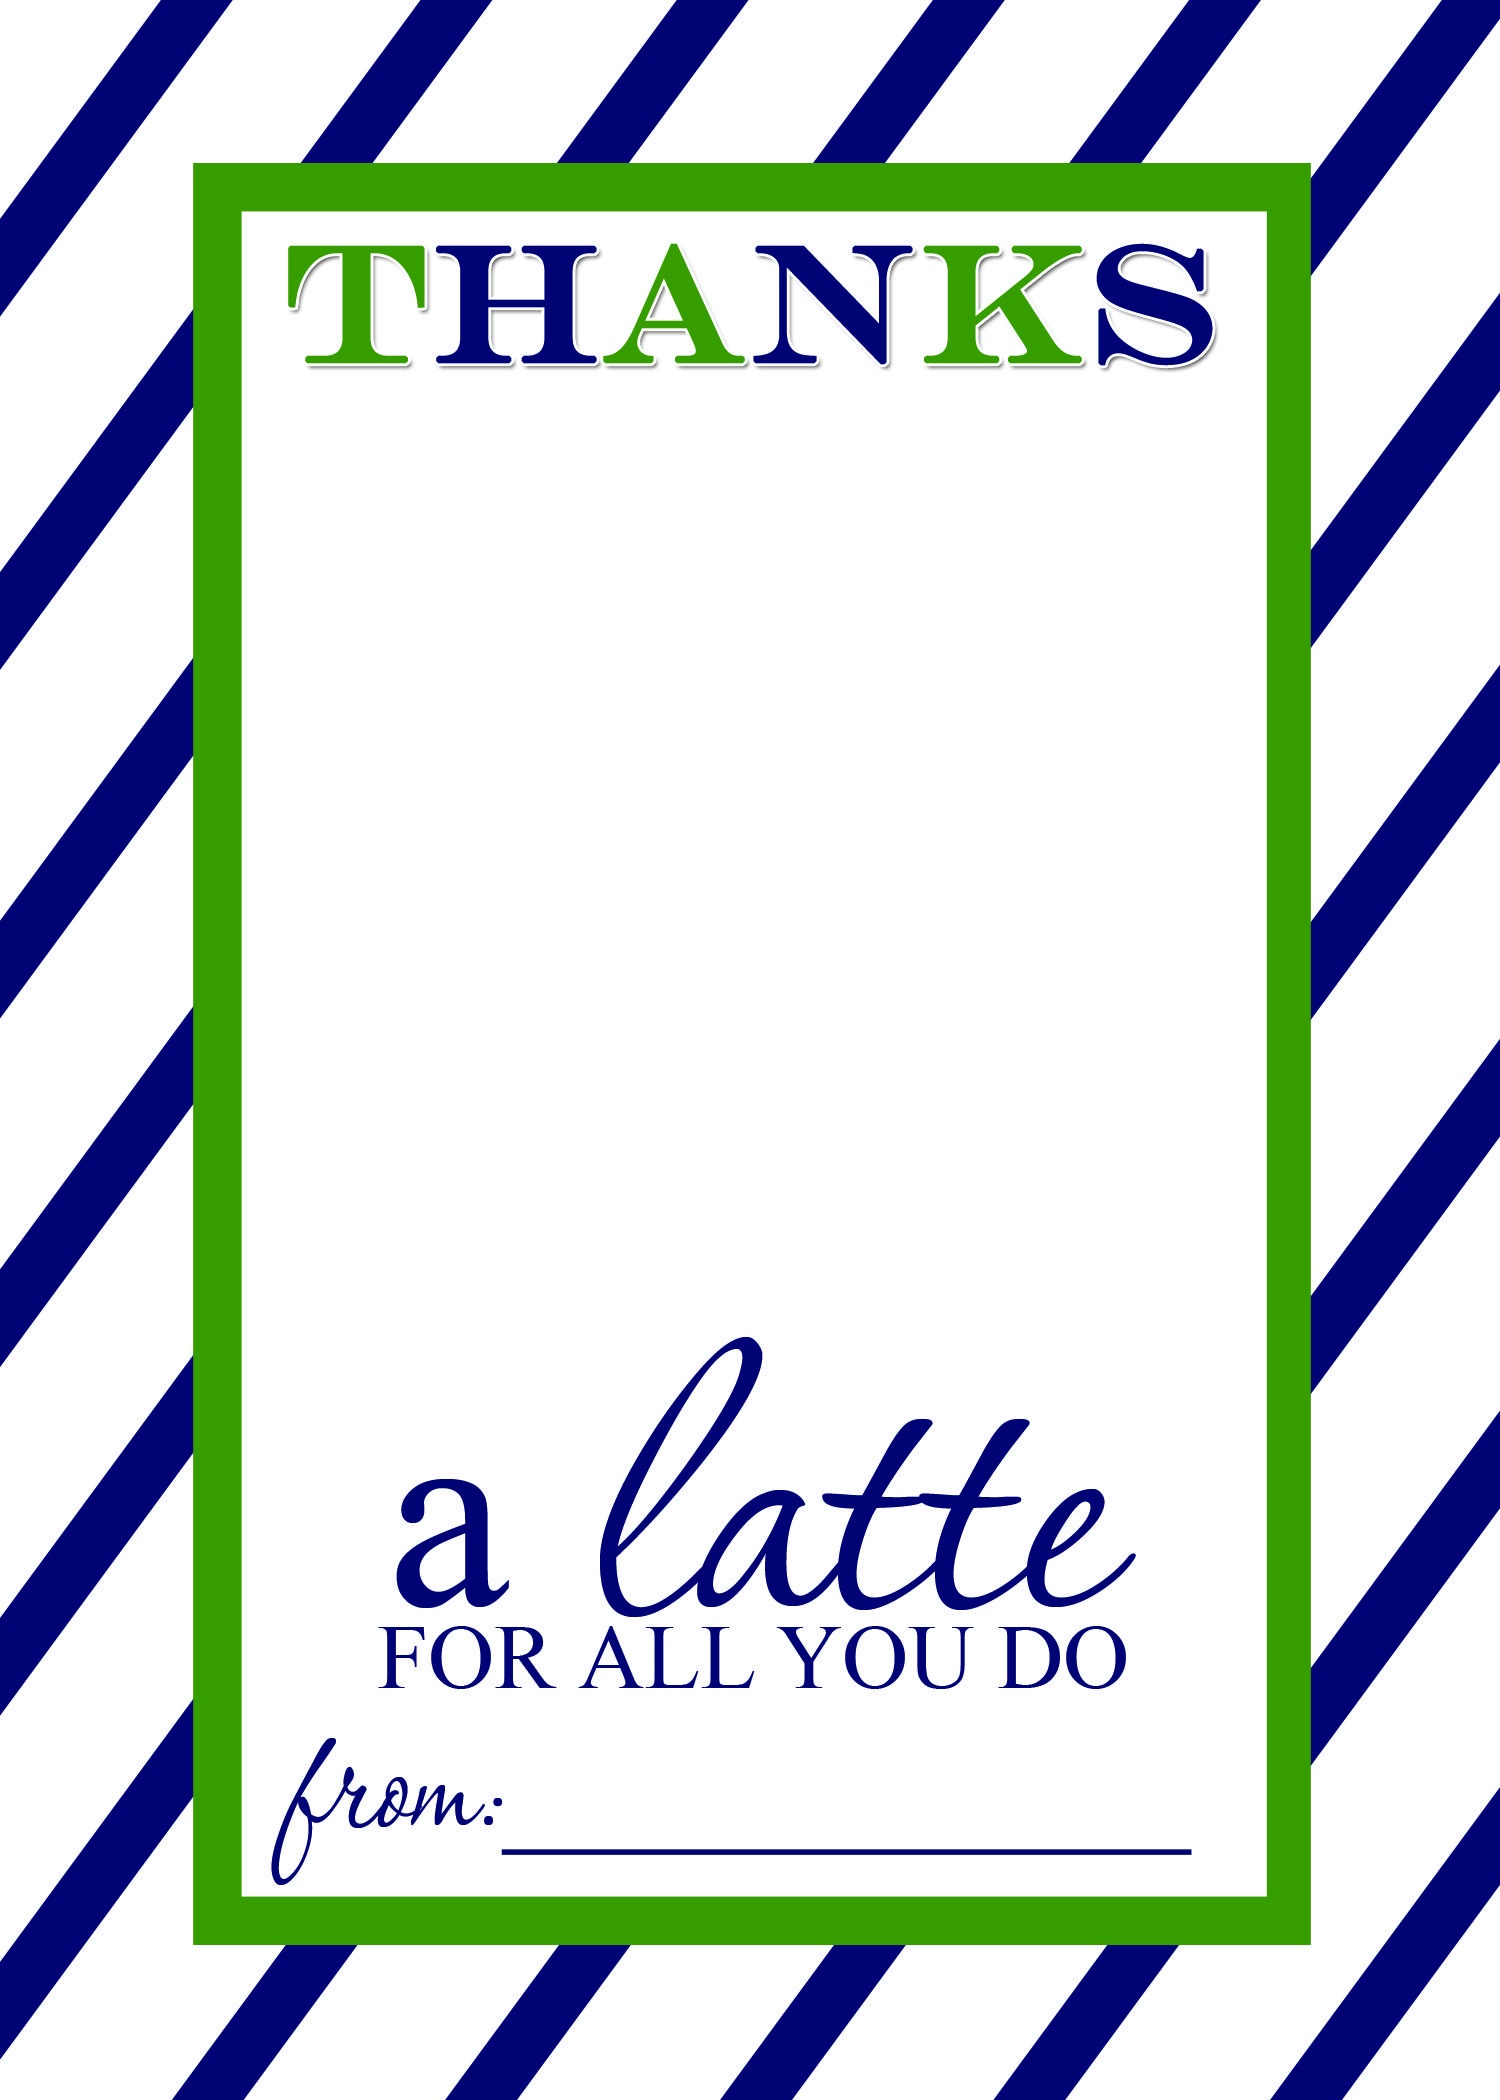 Thanks A Latte Free Printable Gift Card Holder Teacher Gift | Las - Thanks A Latte Free Printable